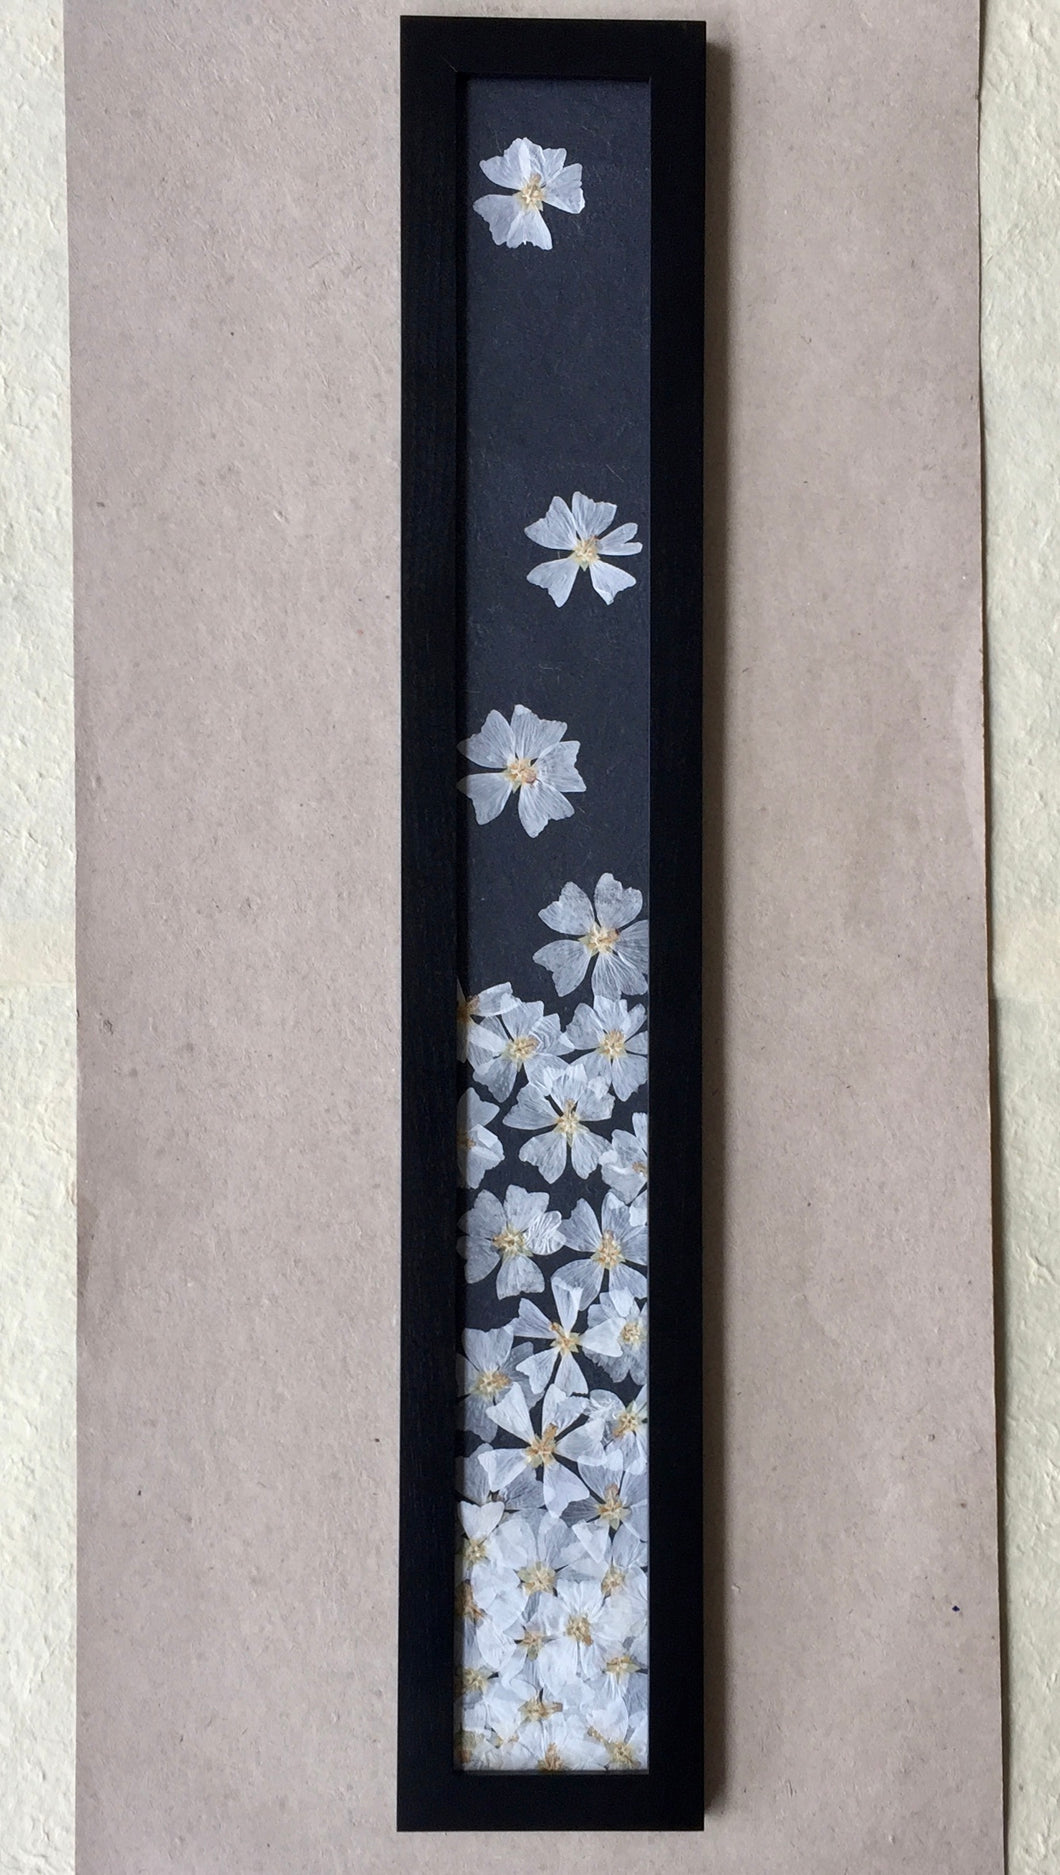 THE SKINNY Pressed Musk Mallow Framed Art with Black Frame